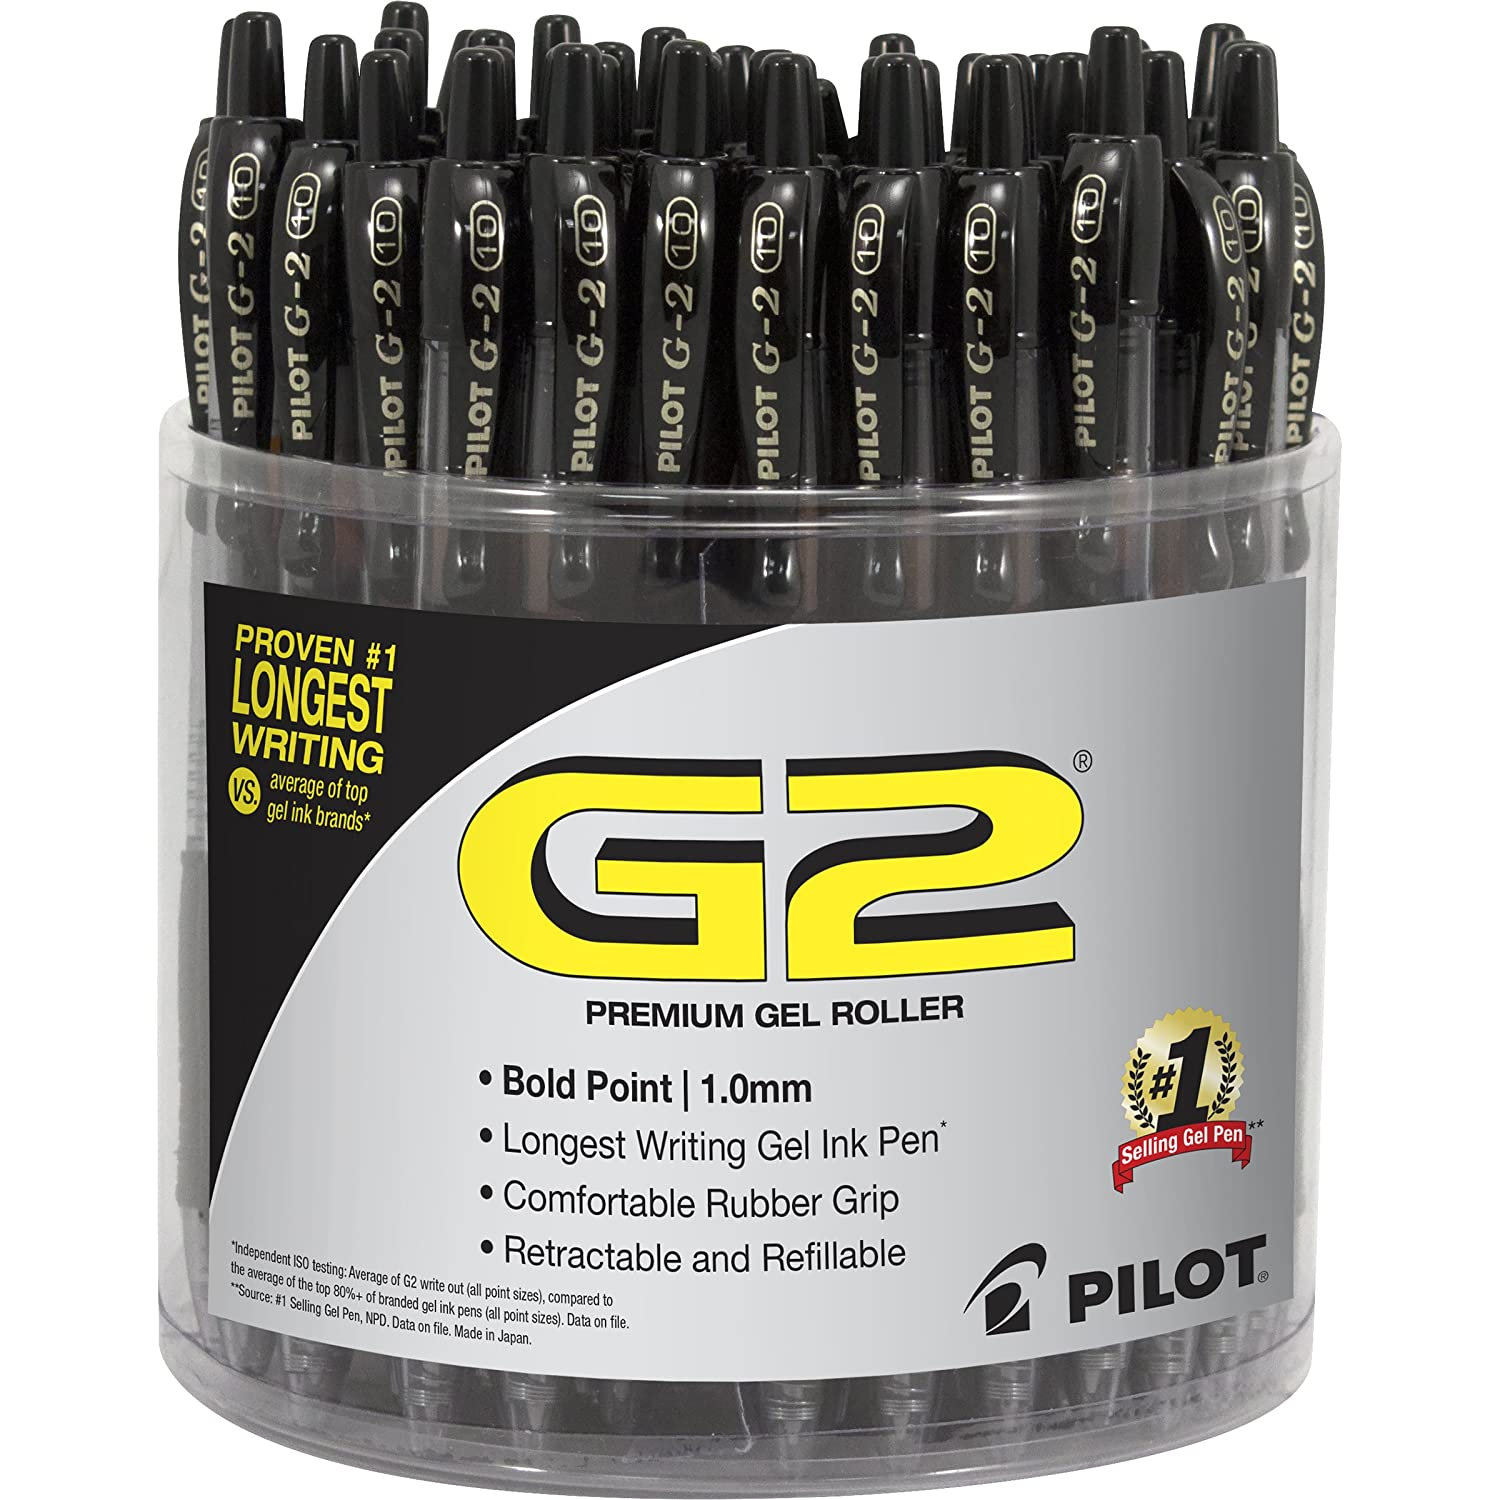 PILOT G2 Premium Refillable & Retractable Rolling Ball Gel Pens, Bold Point, Black Ink, Tub of 48 (5673A)